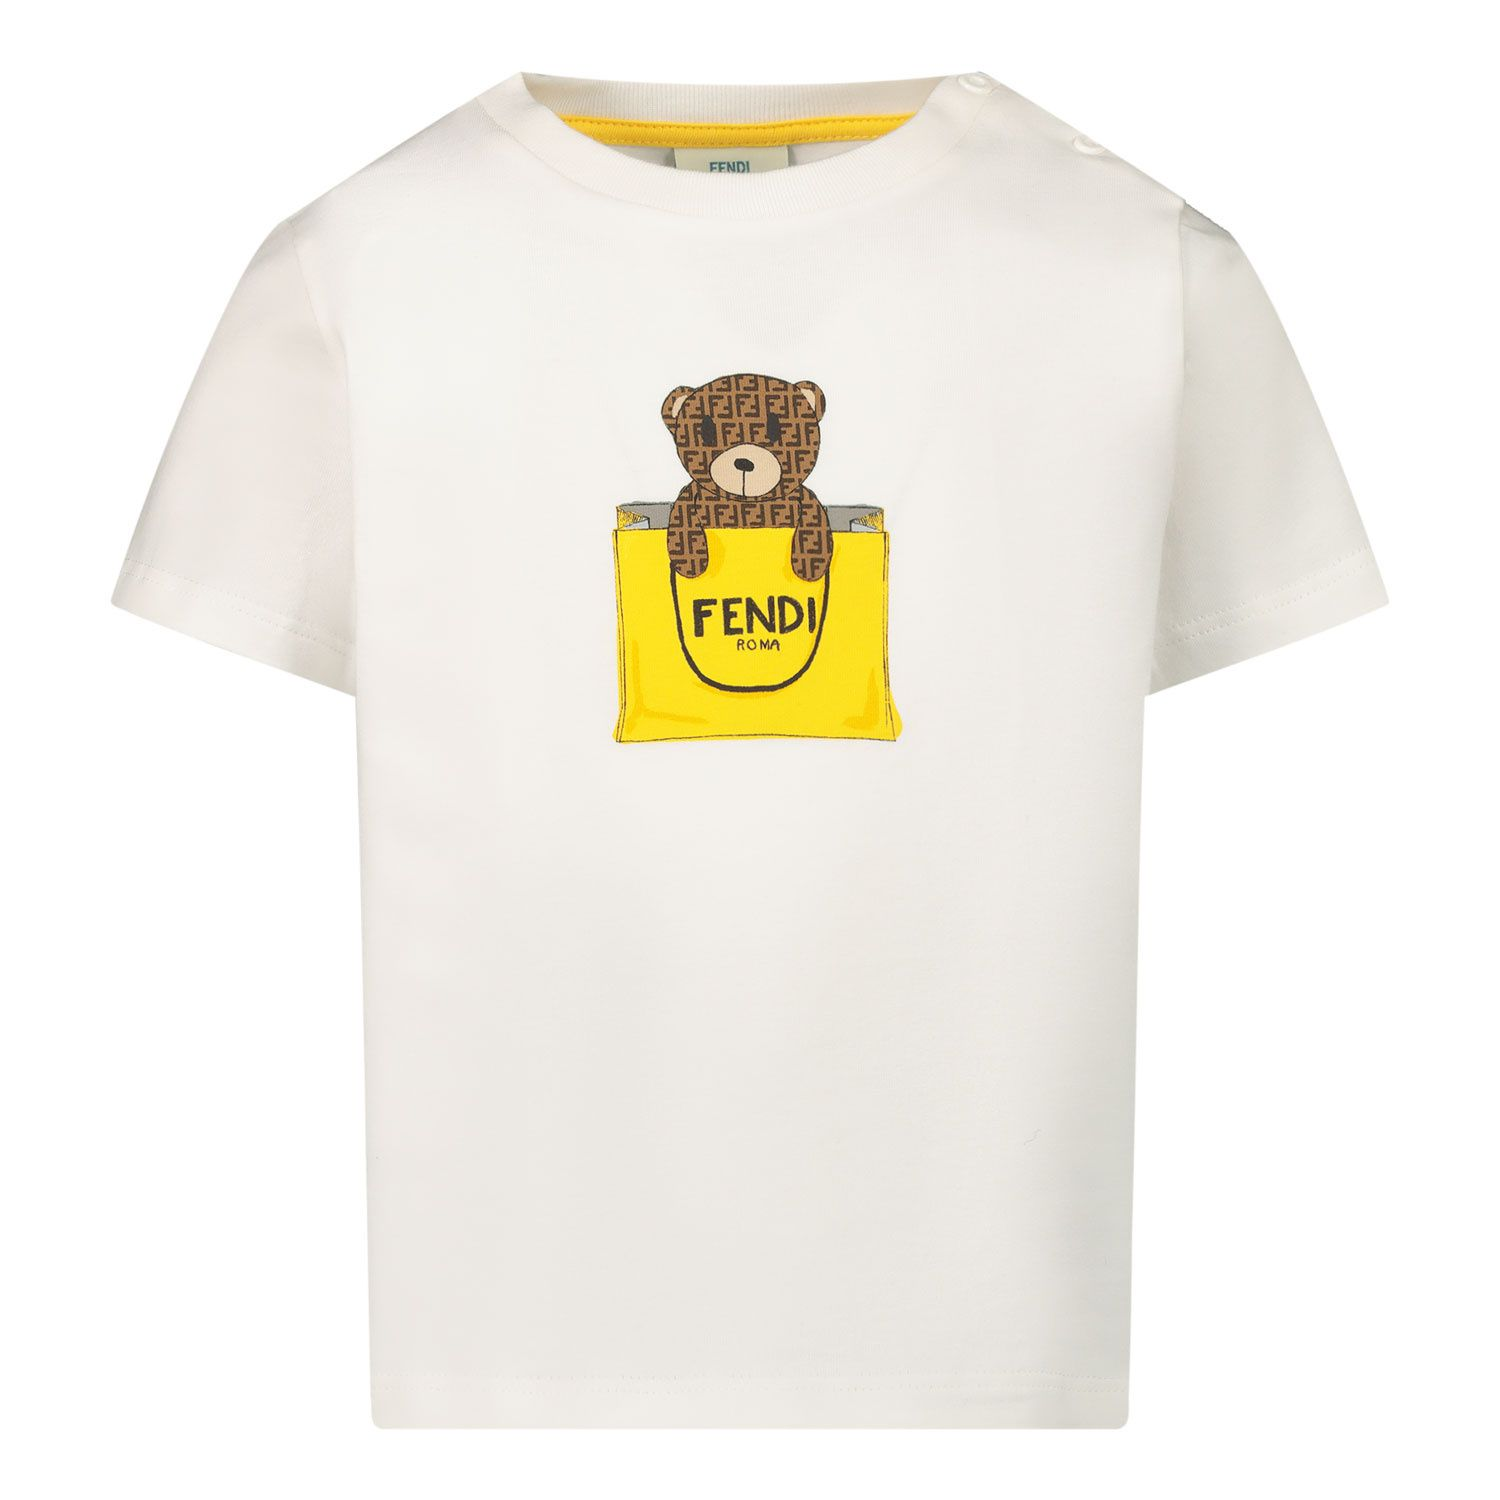 Picture of Fendi BUI016 ST8 baby shirt white